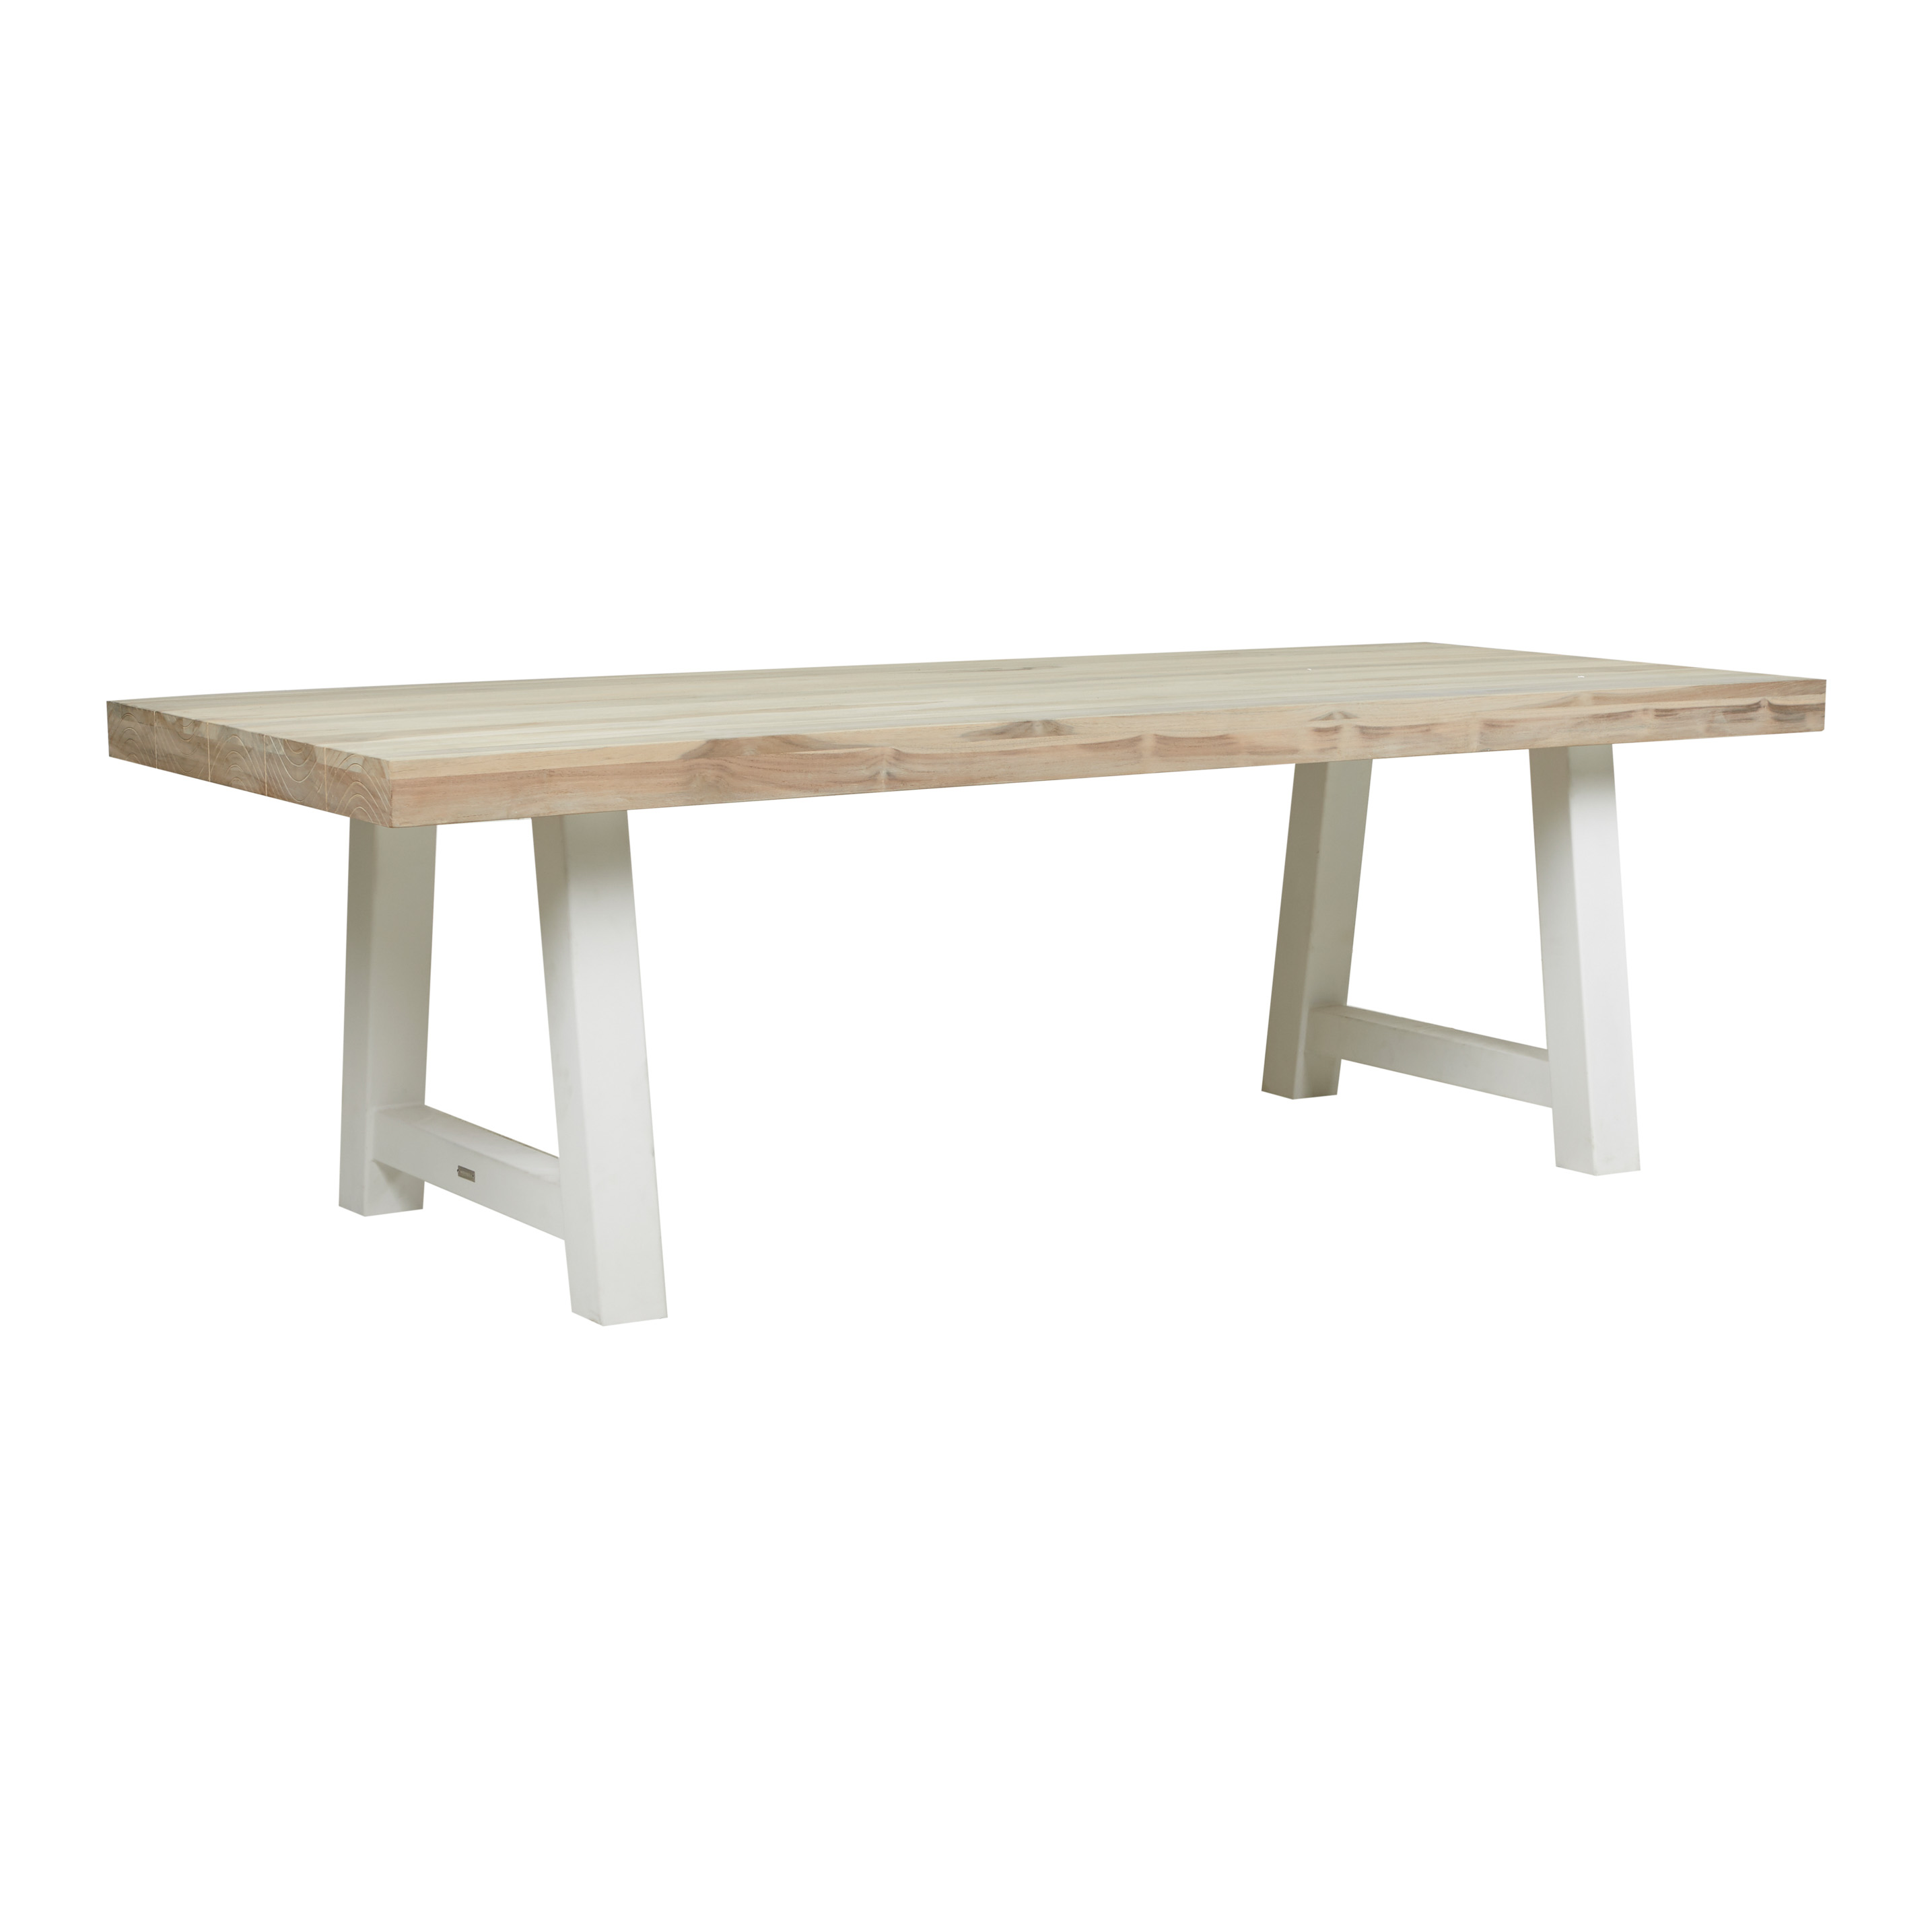 Furniture Hero-Images Dining-Tables granada-beach-eight-seater-02